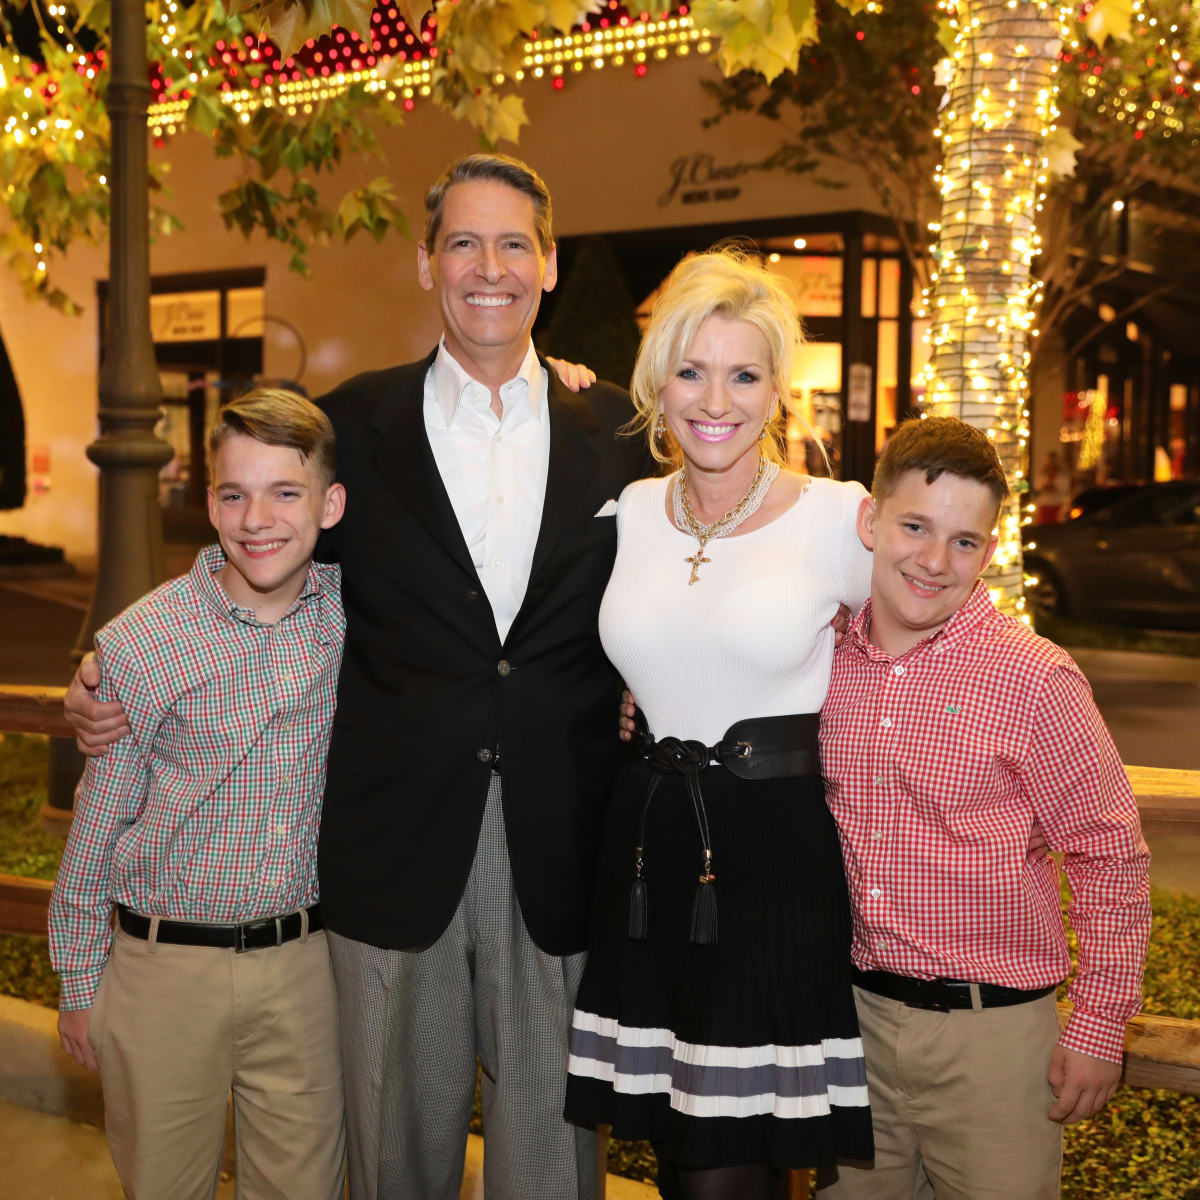 Trent DeClaire, Chris DeClaire, Laurie DeClaire and Patrick DeClaire at Holiday Shopping Card